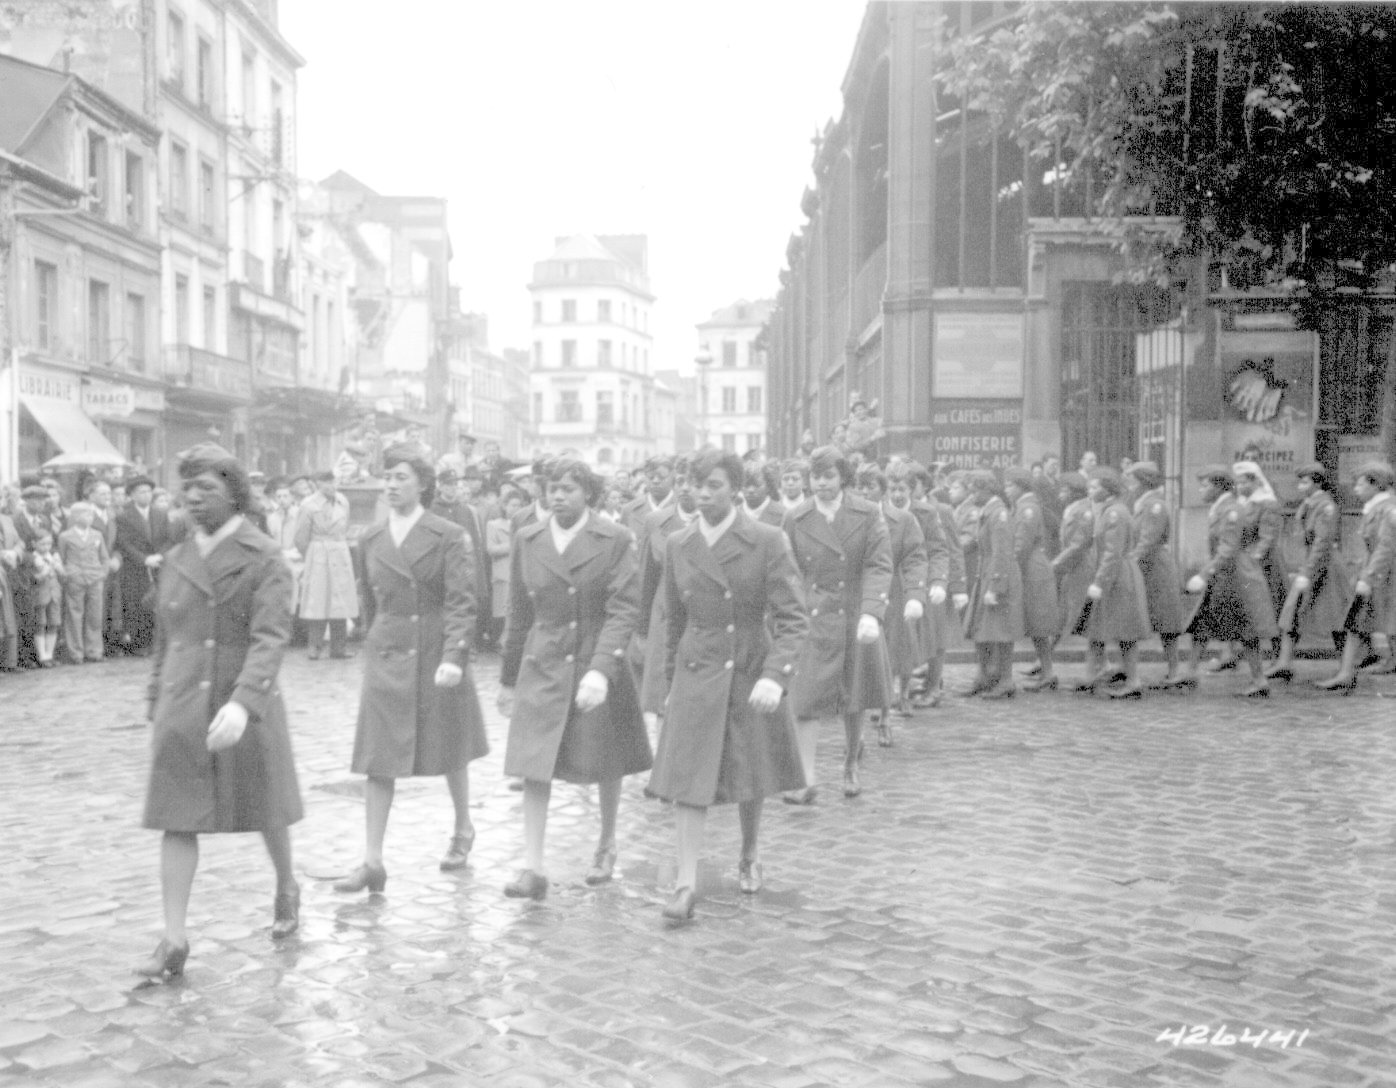 A unit of African American women march during World War Two